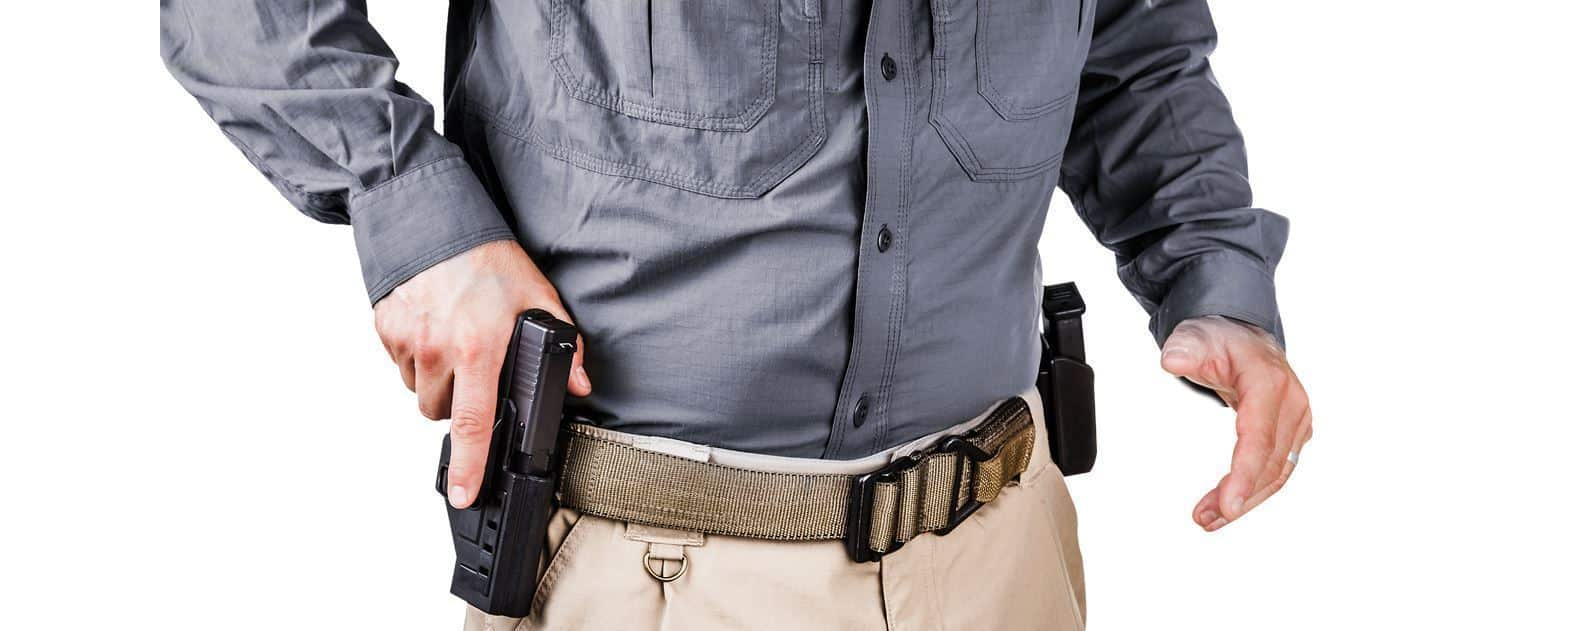 Some Of Our Favorite Must-Have Glock Accessories